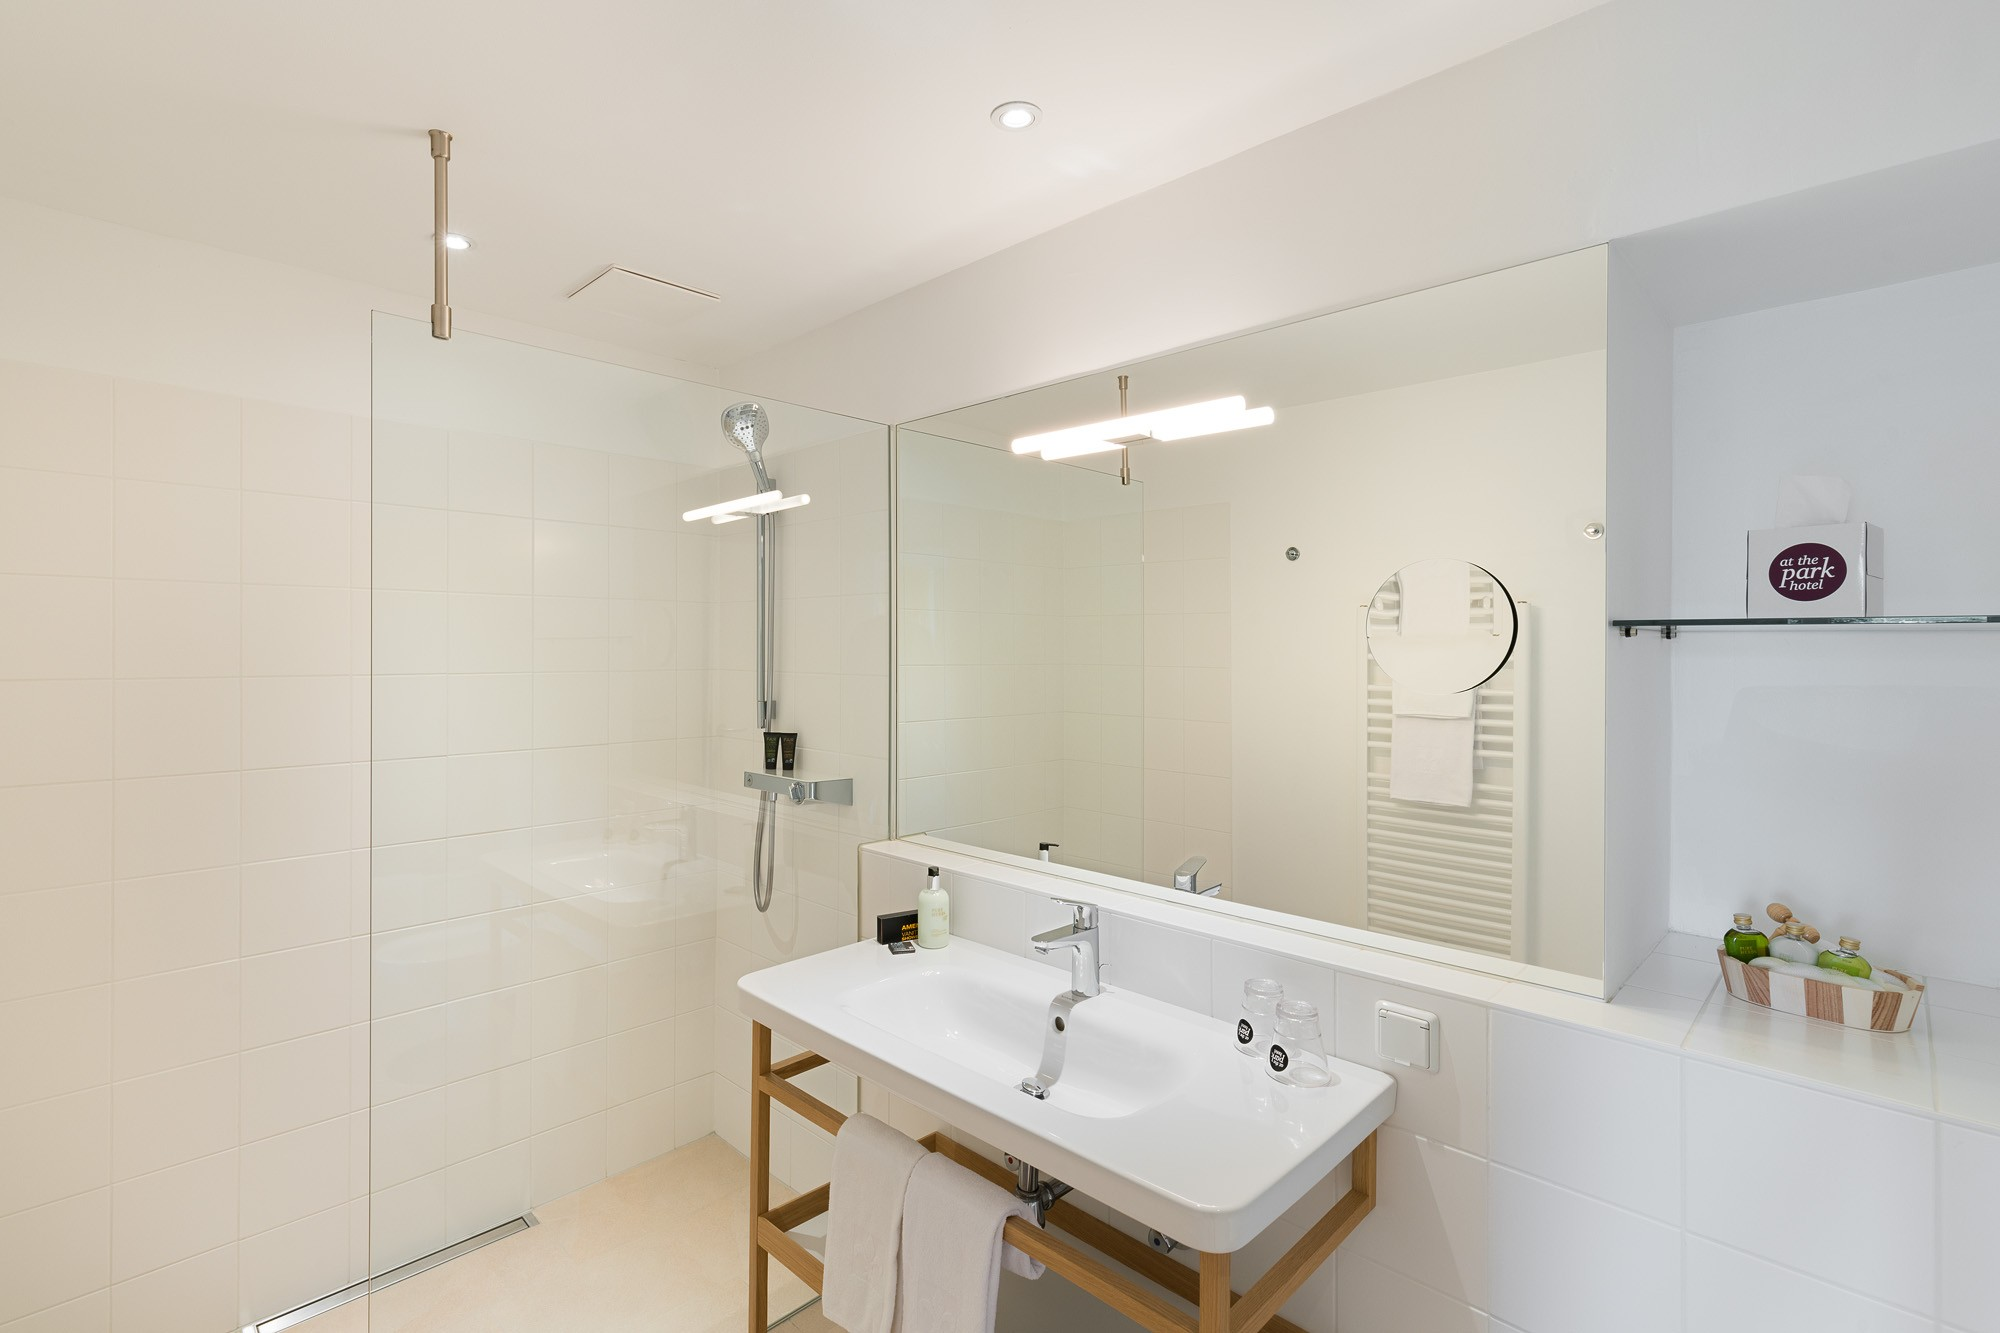 2019_At_the_Park_Zimmer_Suite_Badezimmer_17